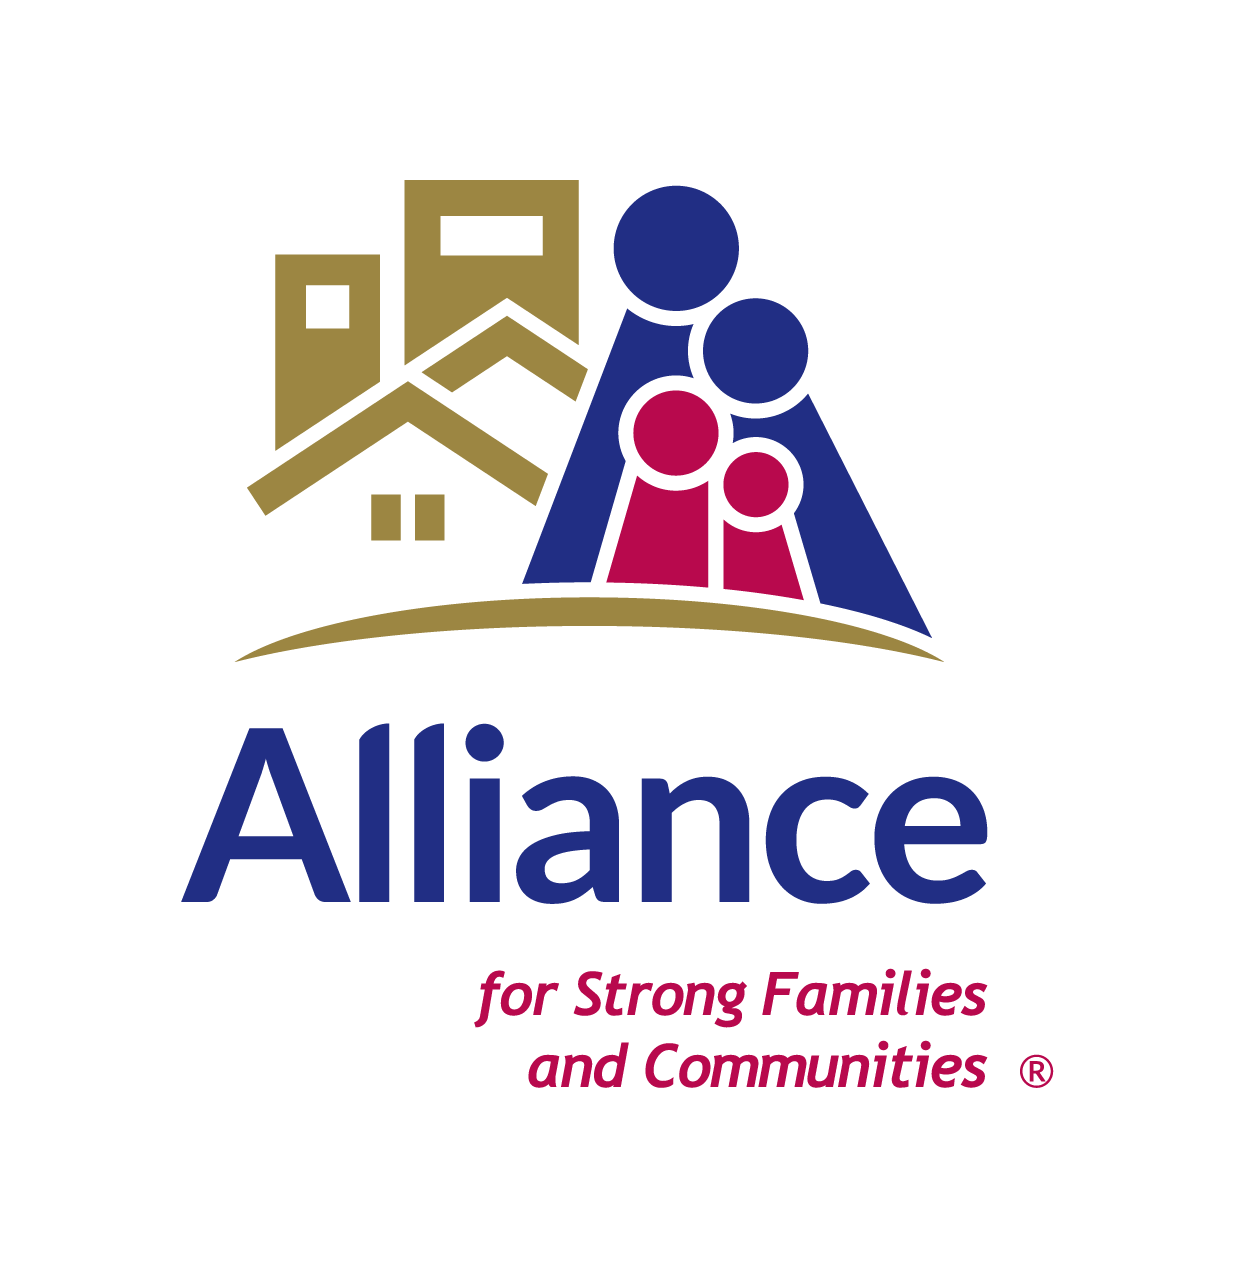 FamilyWize and Alliance have partnered together to provide prescription savings to your community.